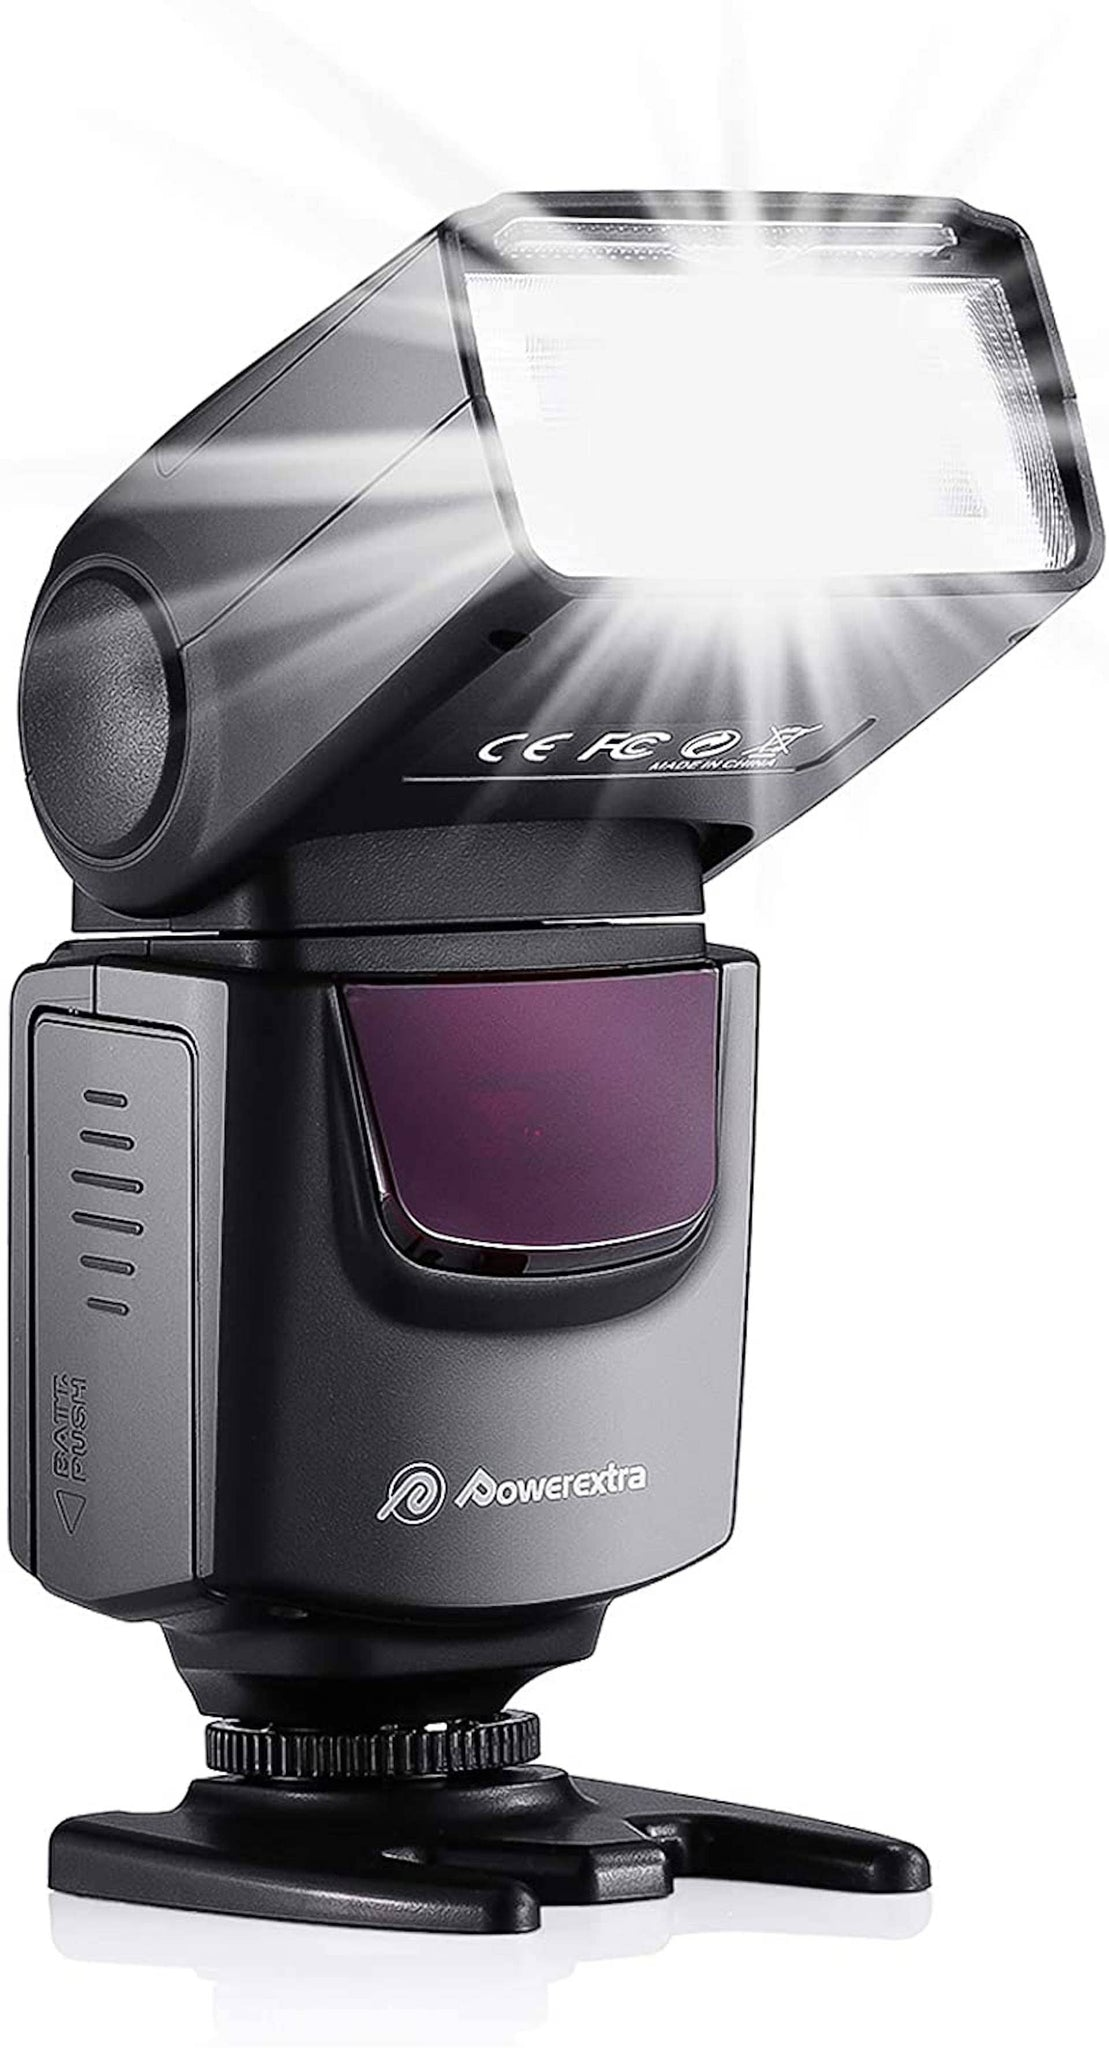 Best Photo Gifts for Photographers - Ideas Photographer Lovers - Flash Speedlight